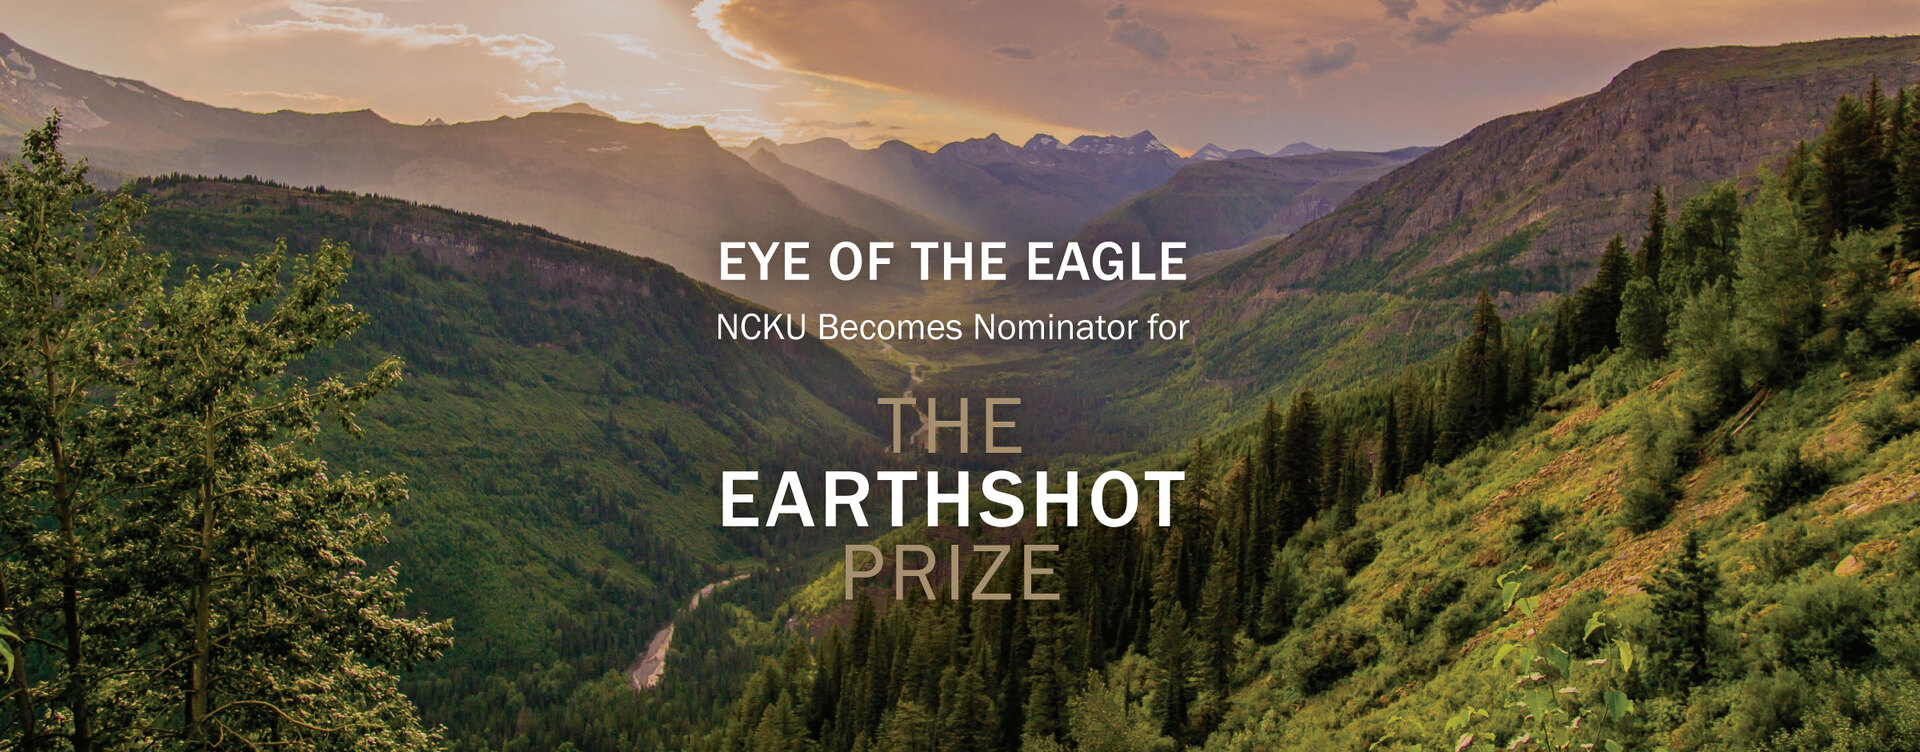 Eye of the Eagle: NCKU Becomes Nominator for The Earthshot Prize